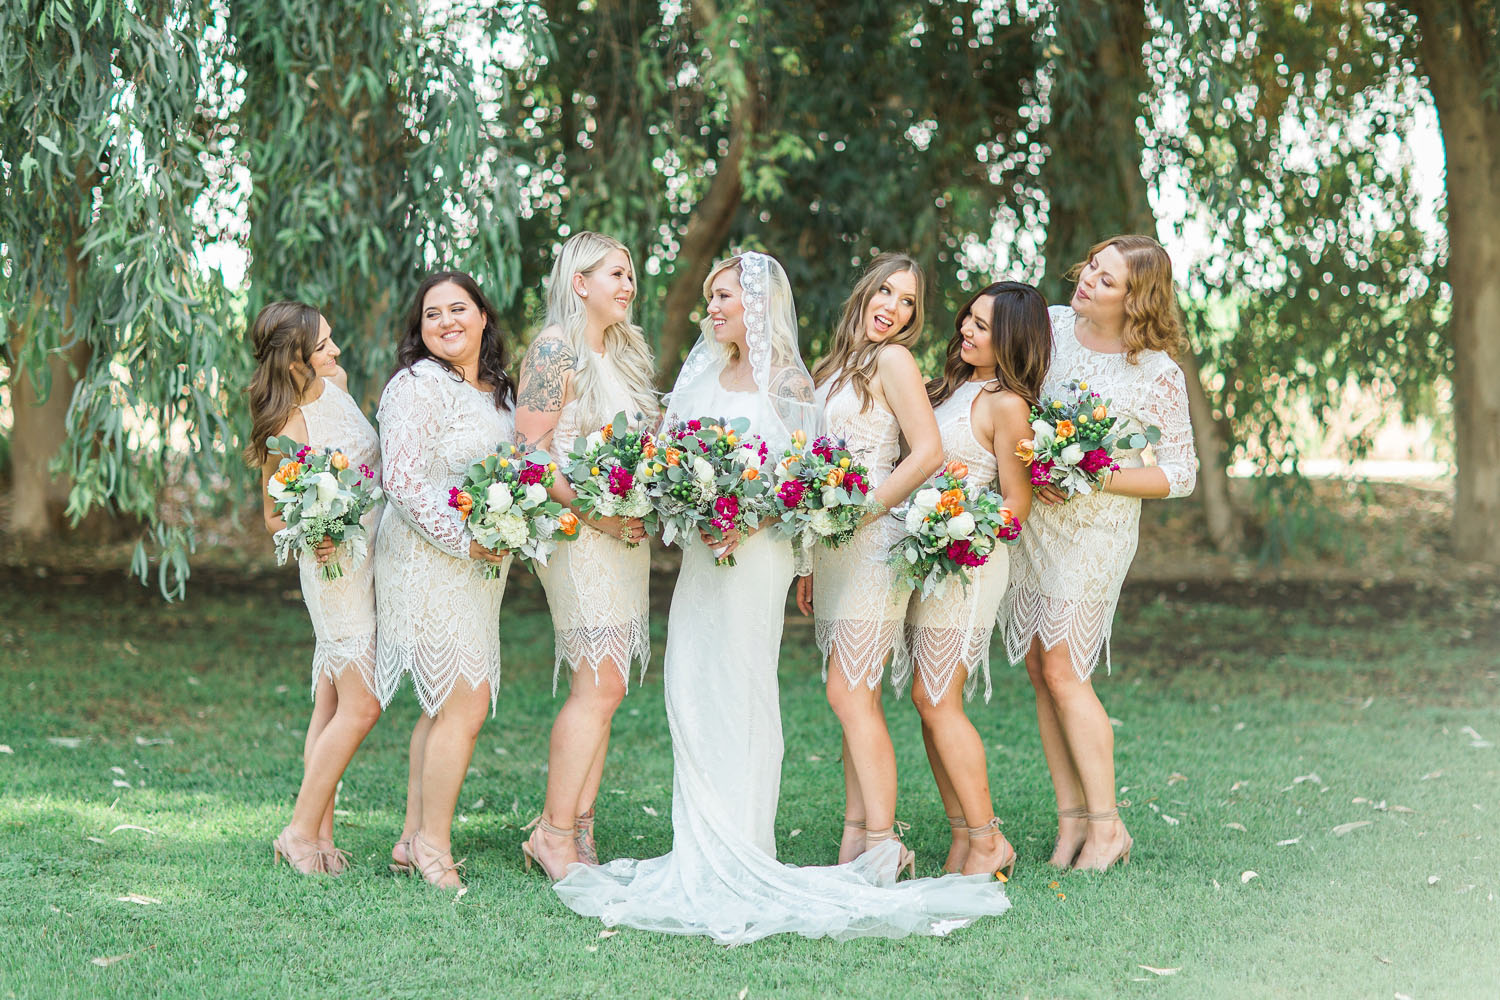 The Photege - Elegant Boho Wedding on Suburu Farm in Bakersfield California- Cassie and Darin Buoni-2987